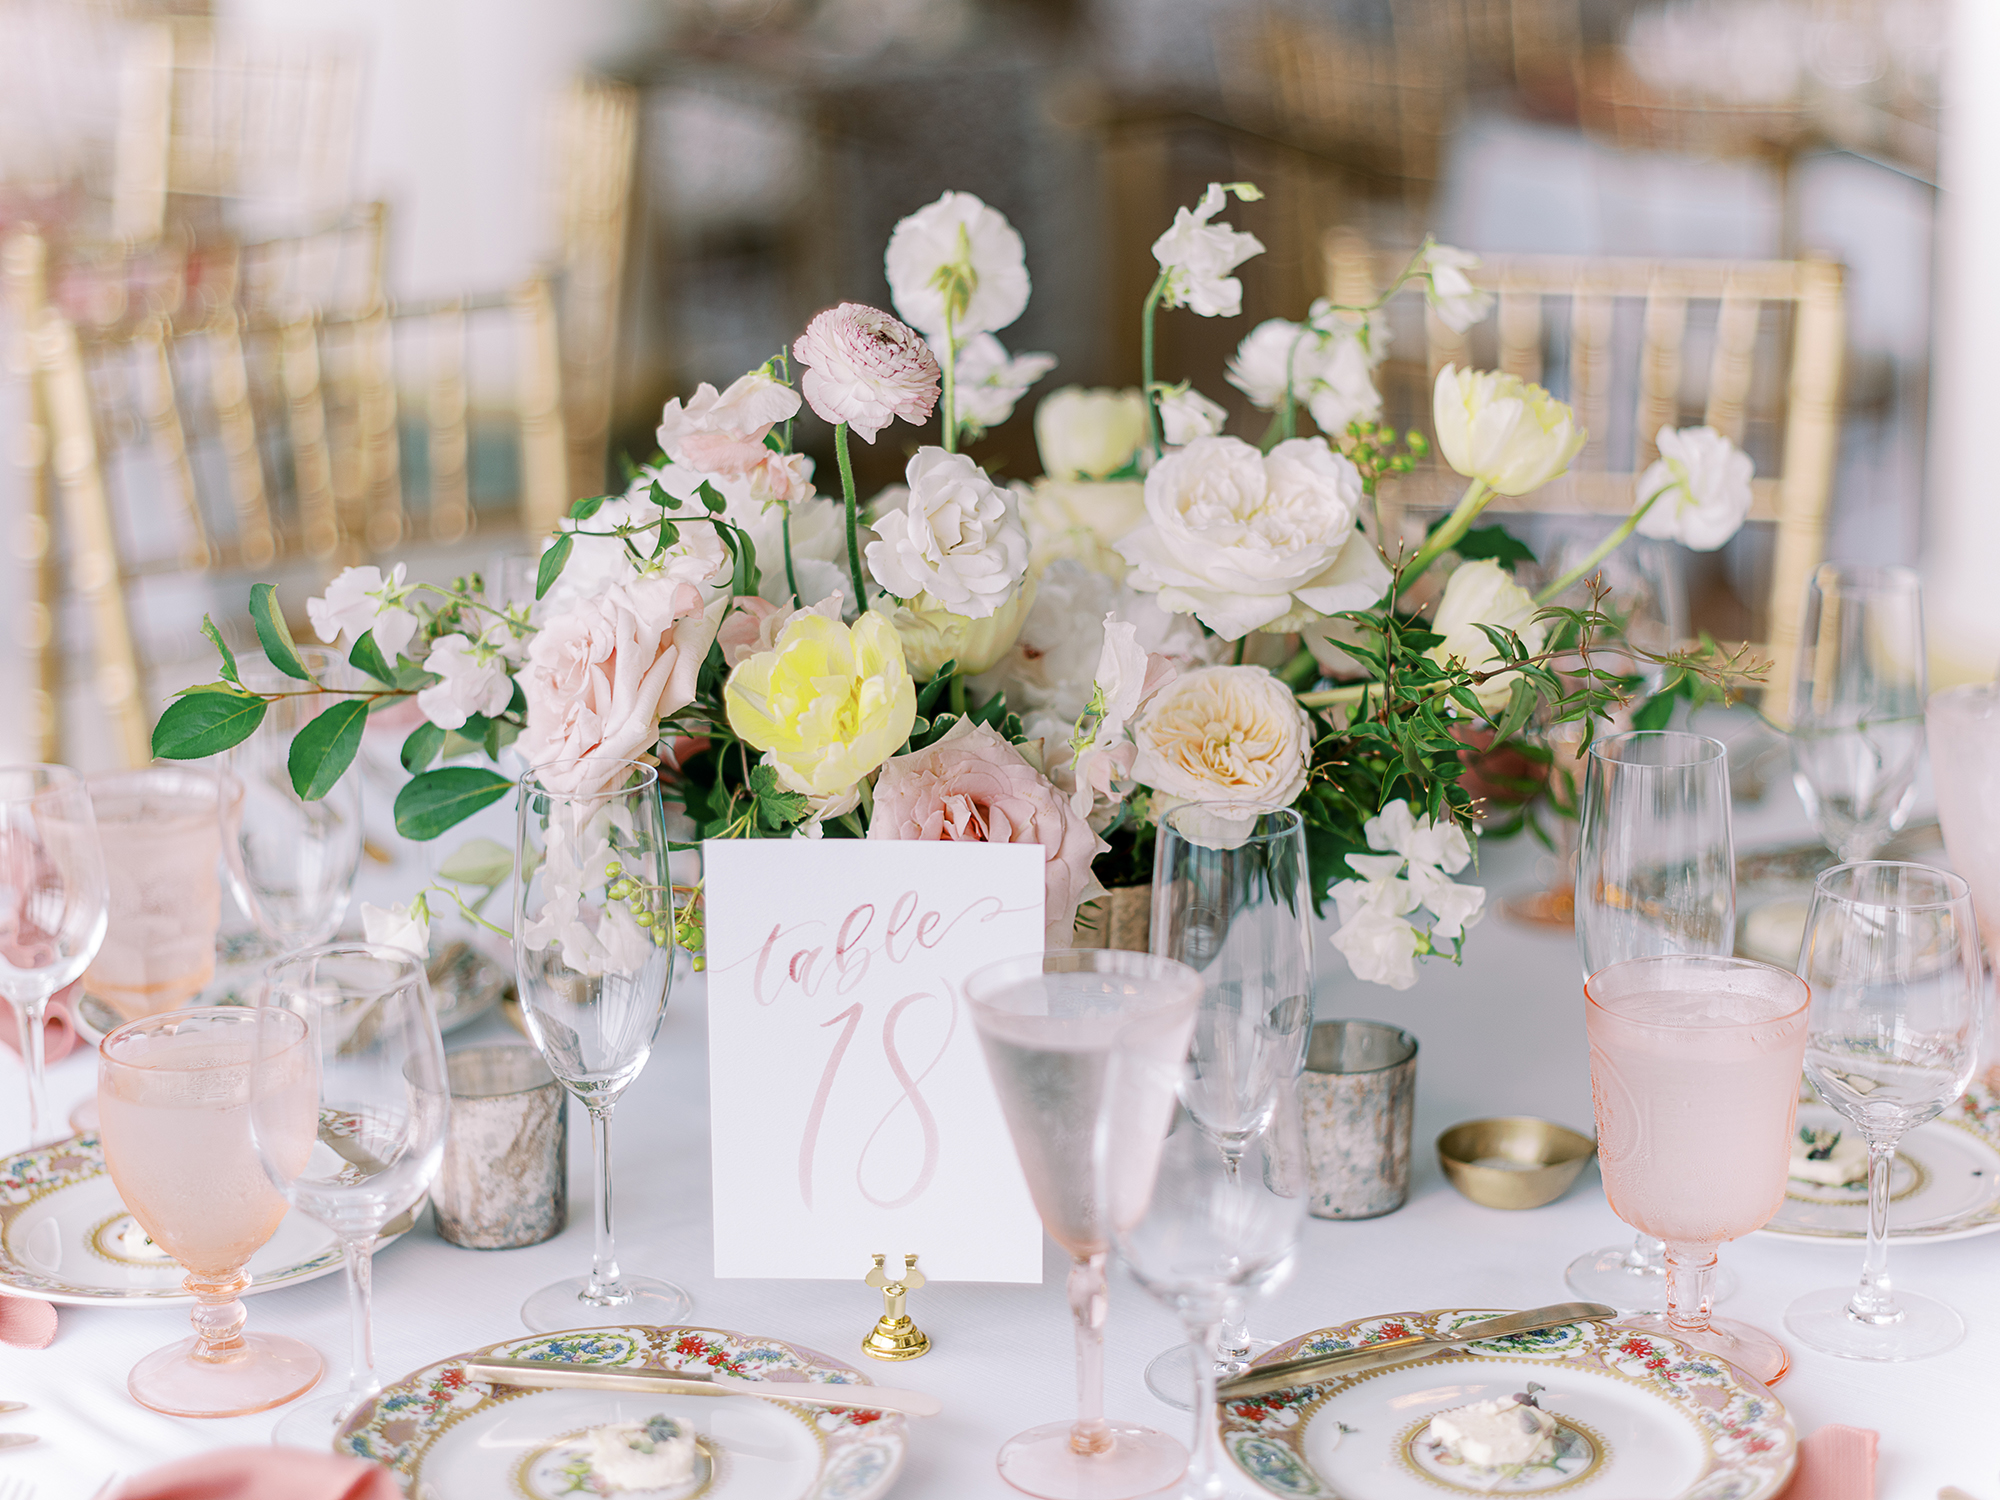 Sam Allen Creates – Watercolor Table Number for Wedding Reception Tablescape – Clary Pfeiffer Photography.jpg